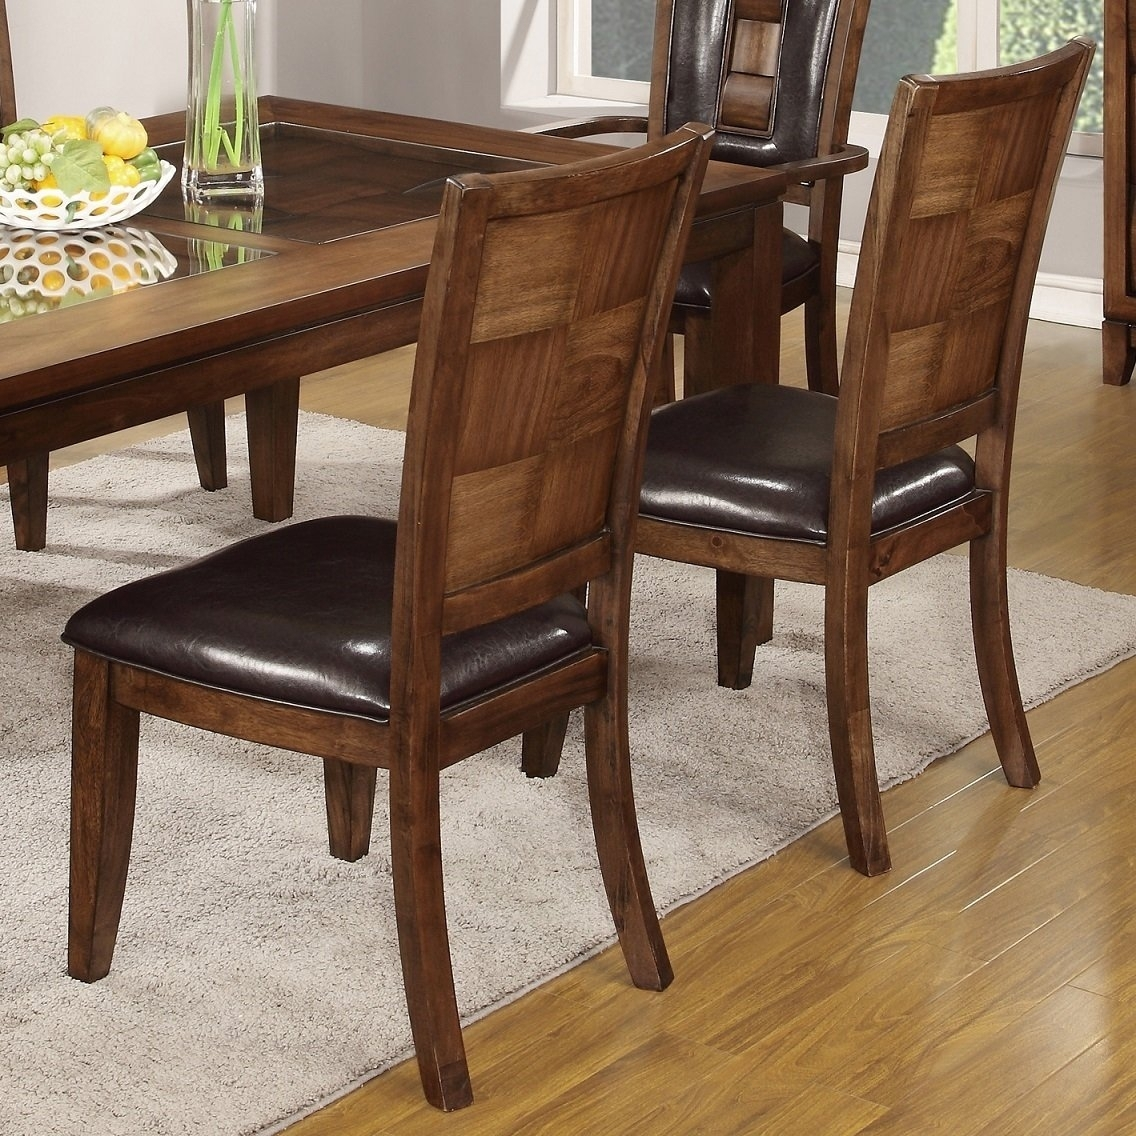 Shop Calais 7 Piece Parquet Finish Solid Wood Dining Table With 6 Intended For Most Recent Parquet 6 Piece Dining Sets (Image 16 of 20)